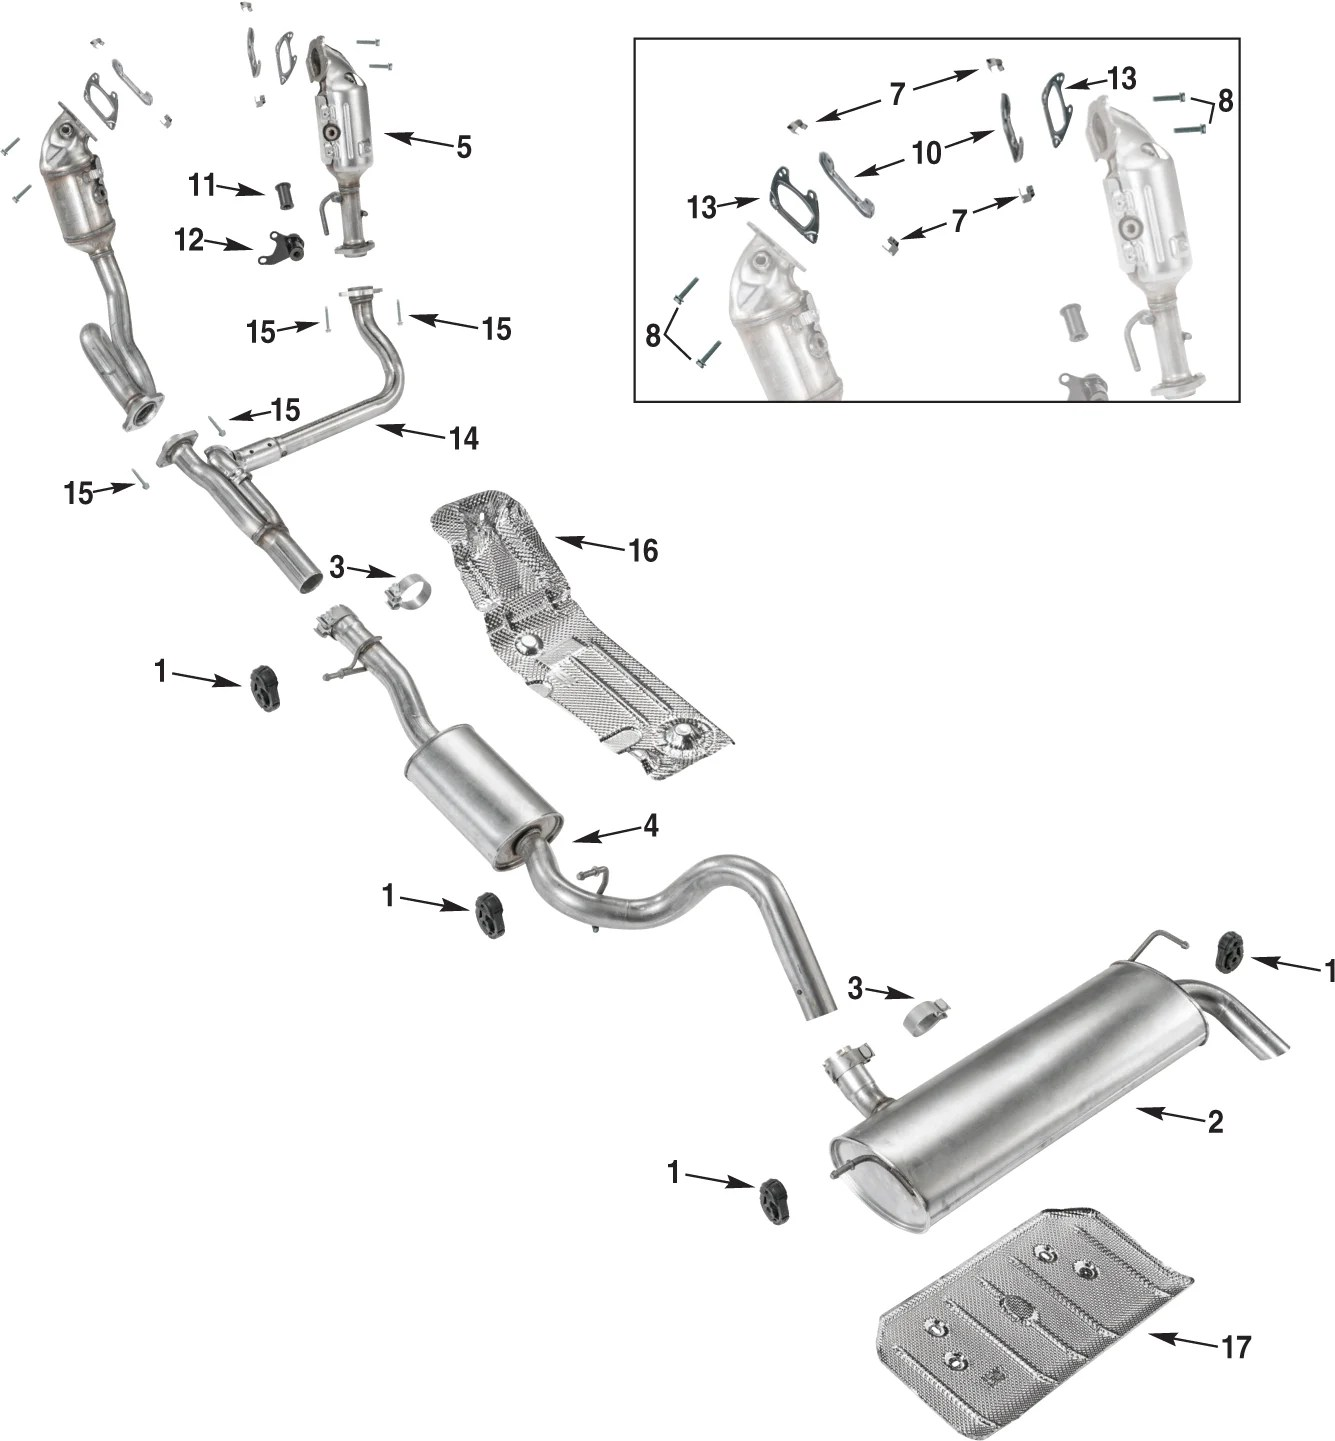 Jeep Wrangler Jk Exhaust Parts 12 18